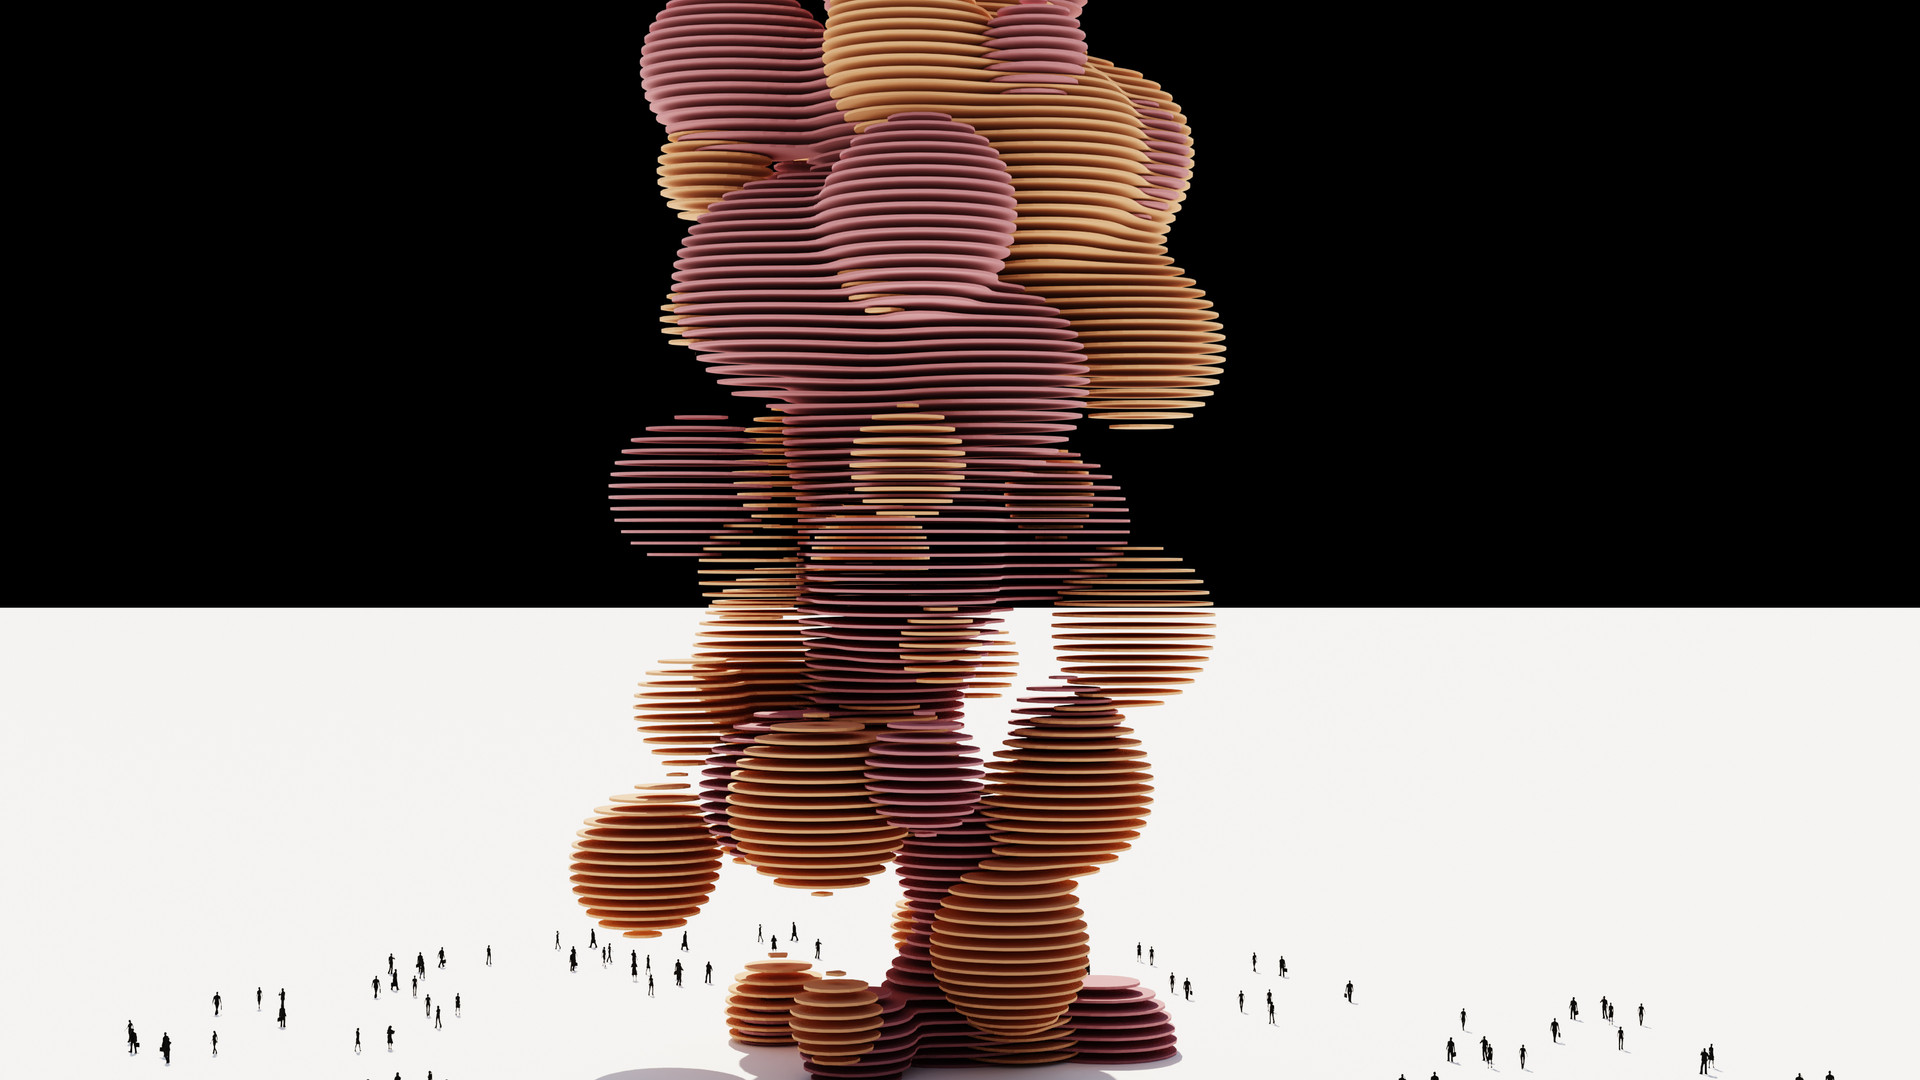 Metaball Tower